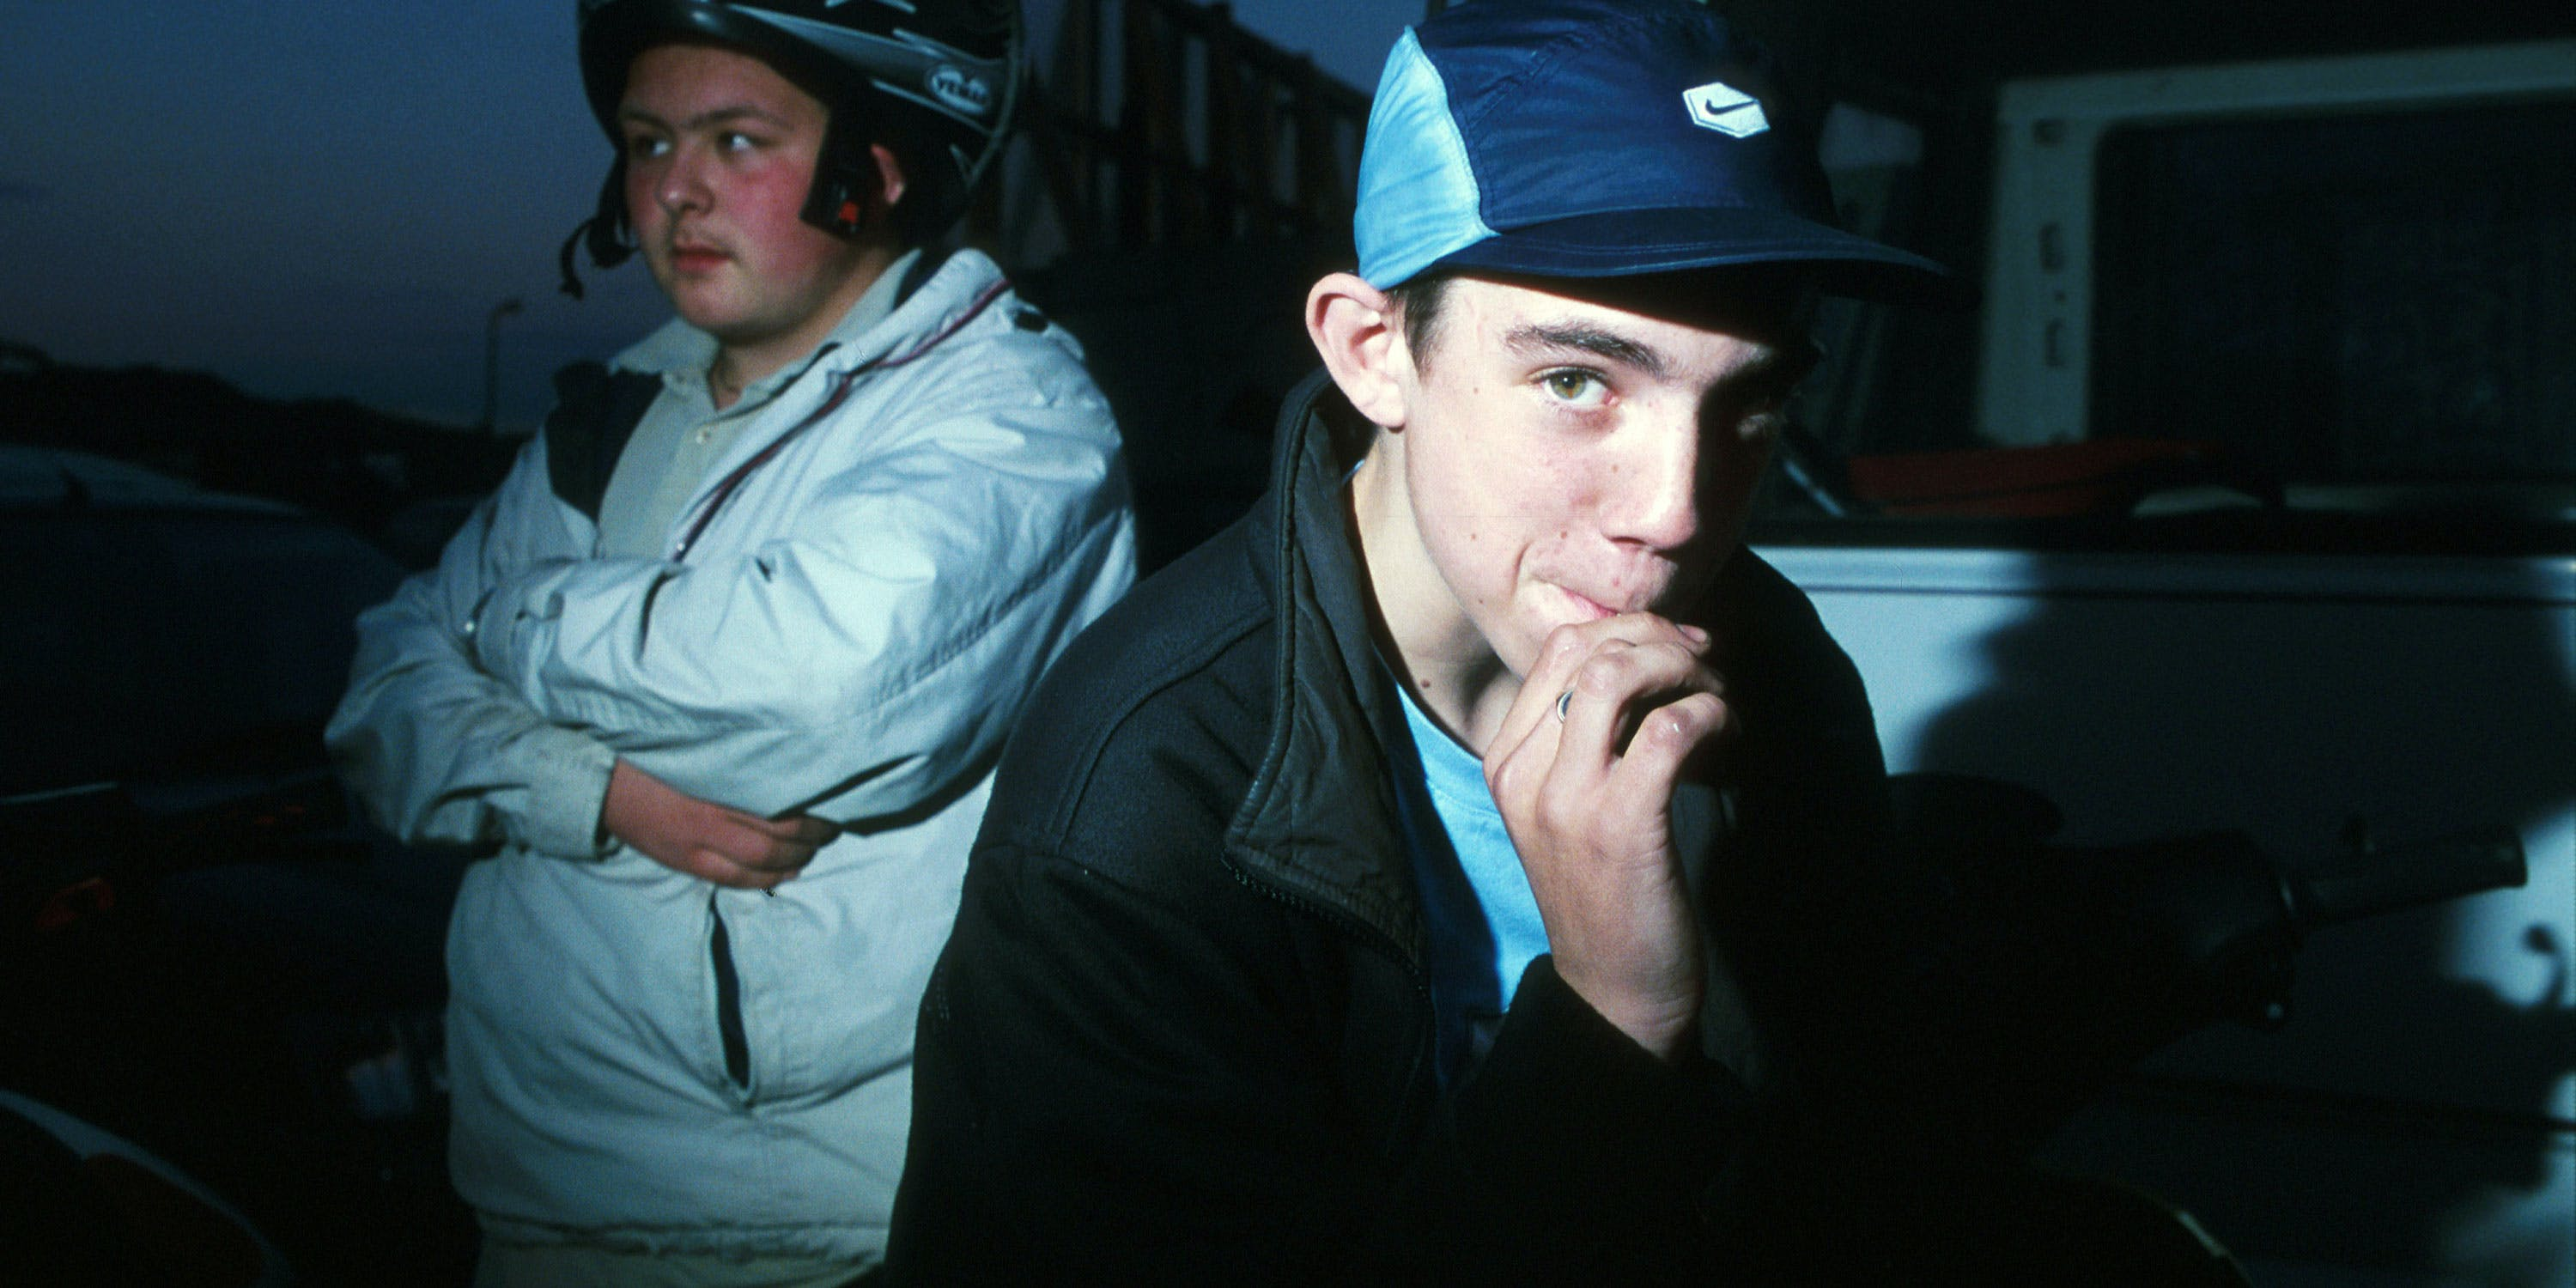 A teenage scooter boy smoking a spliff in Luton, UK in 2004. A new report found teens buy weed more easily than alcohol in the UK.